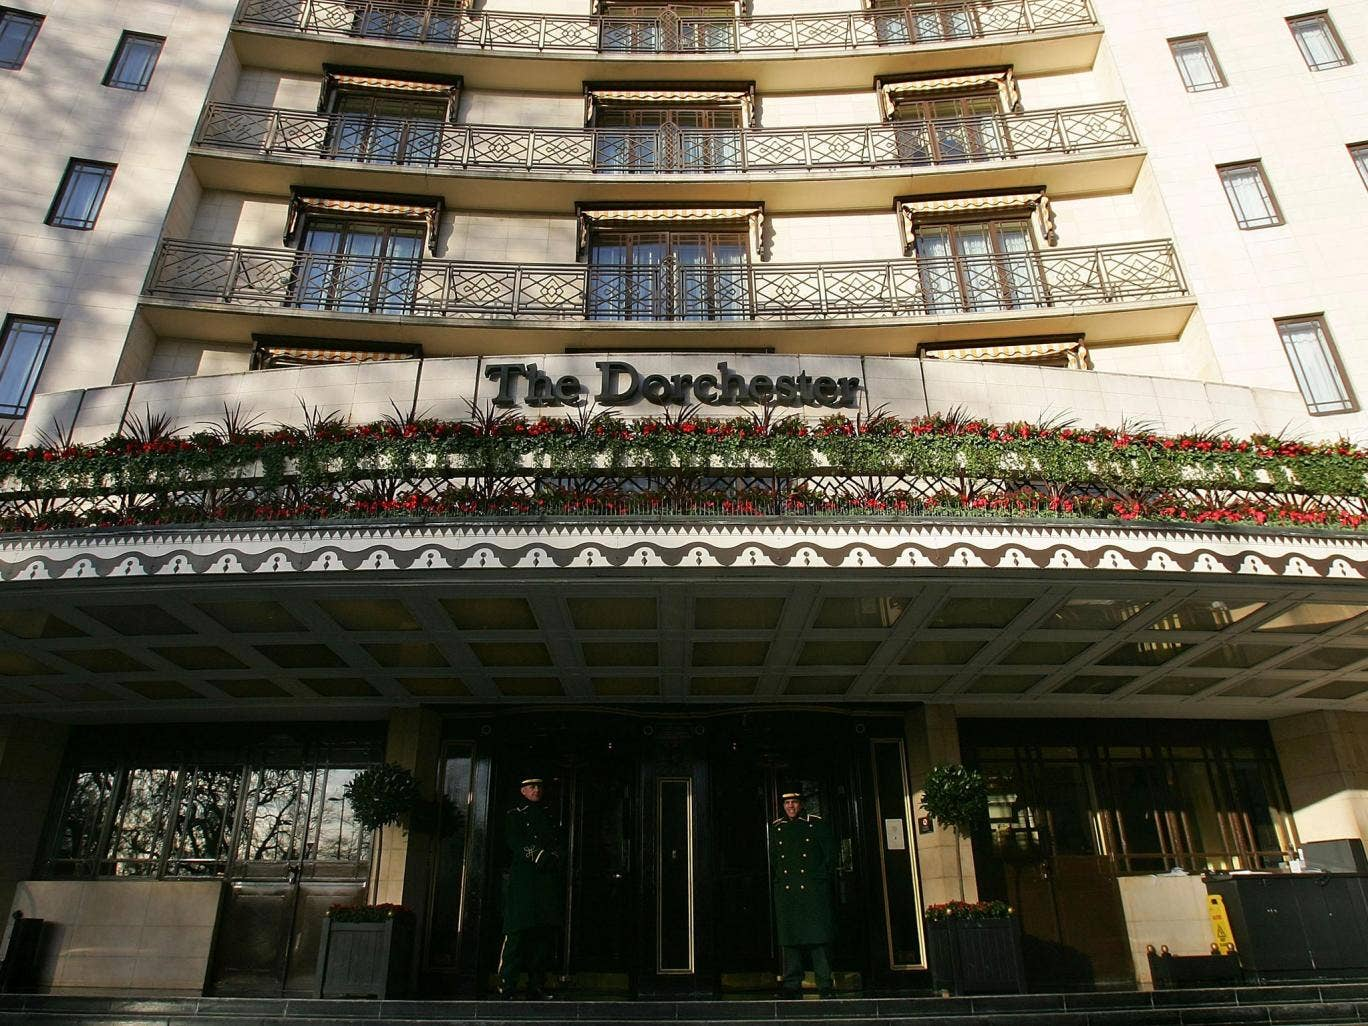 The Royal Philharmonic Society may drop the Dorchester as a venue for its music awards